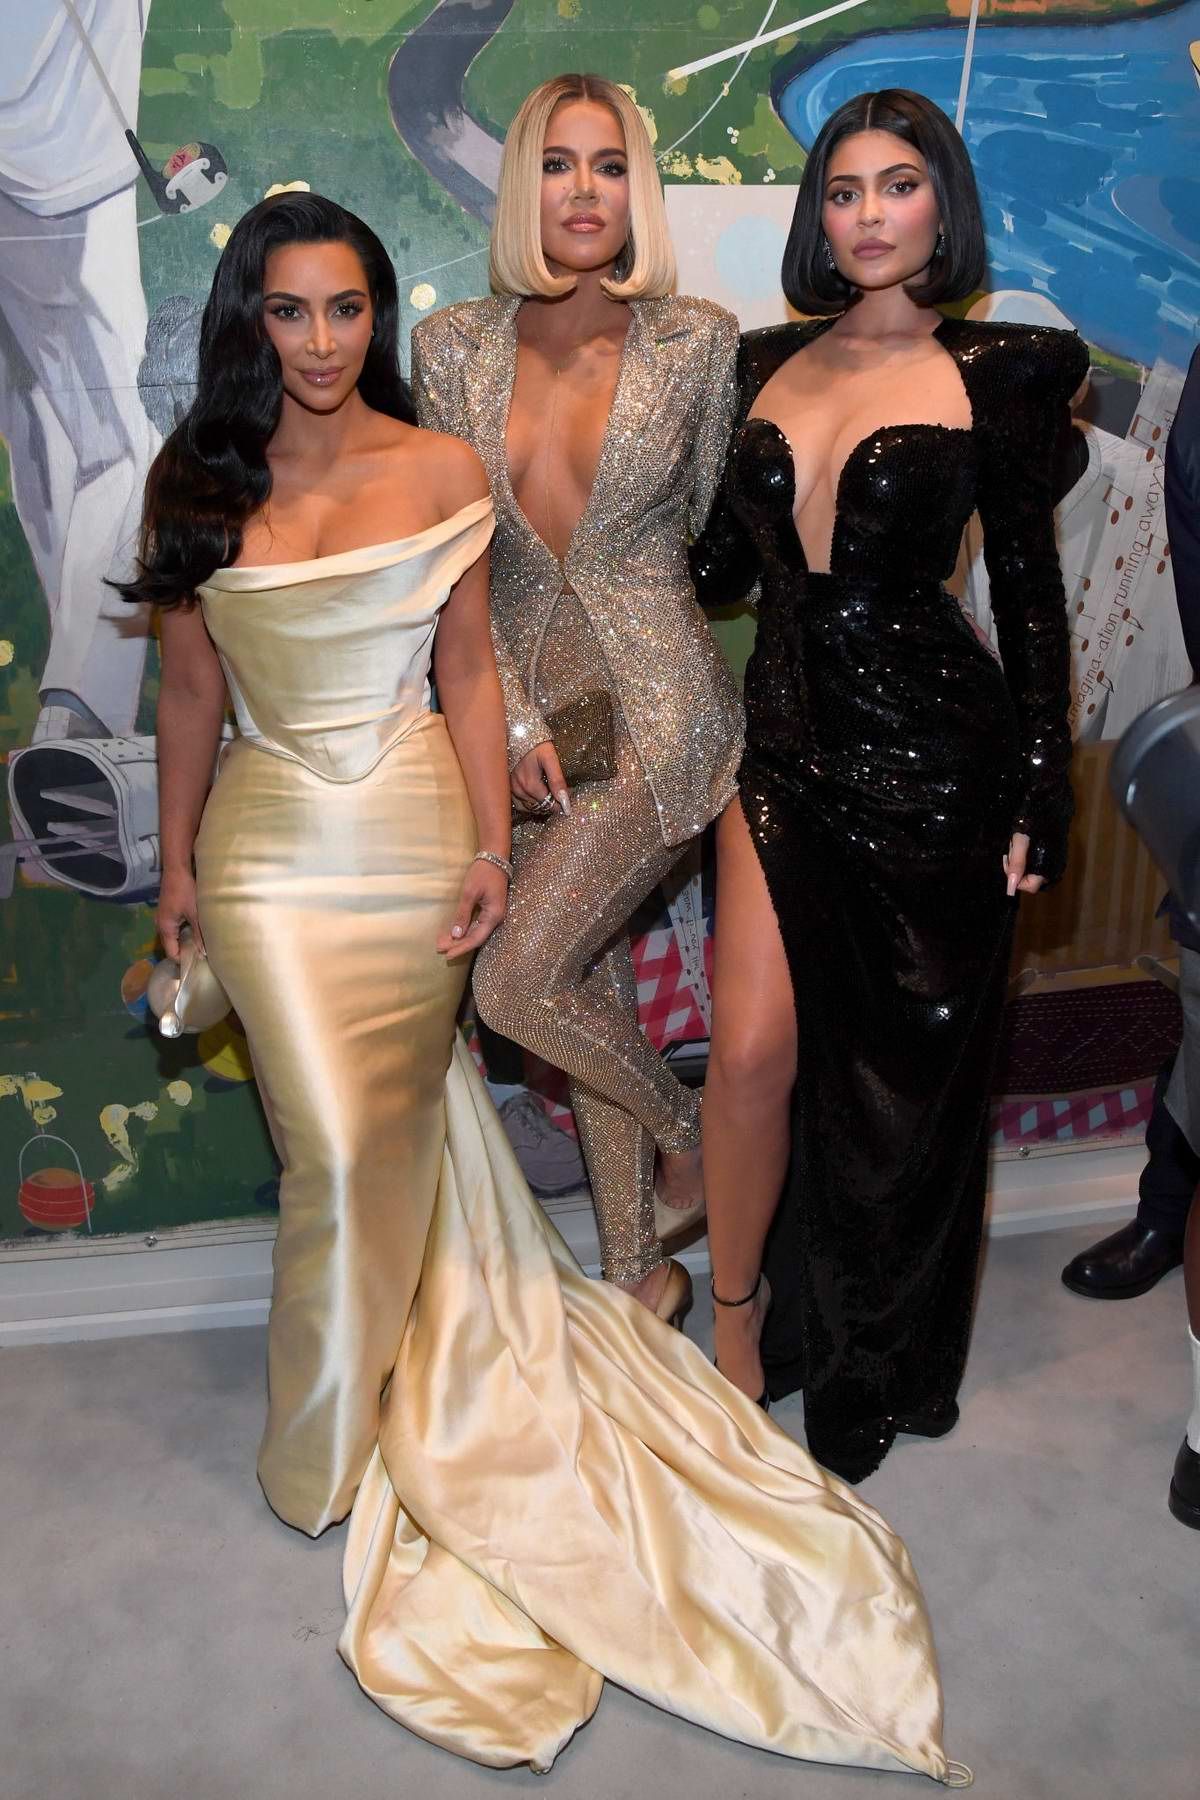 Kim Kardashian, Kylie Jenner, and Khloe Kardashian attend Sean Combs 50th Birthday Bash in Los Angeles